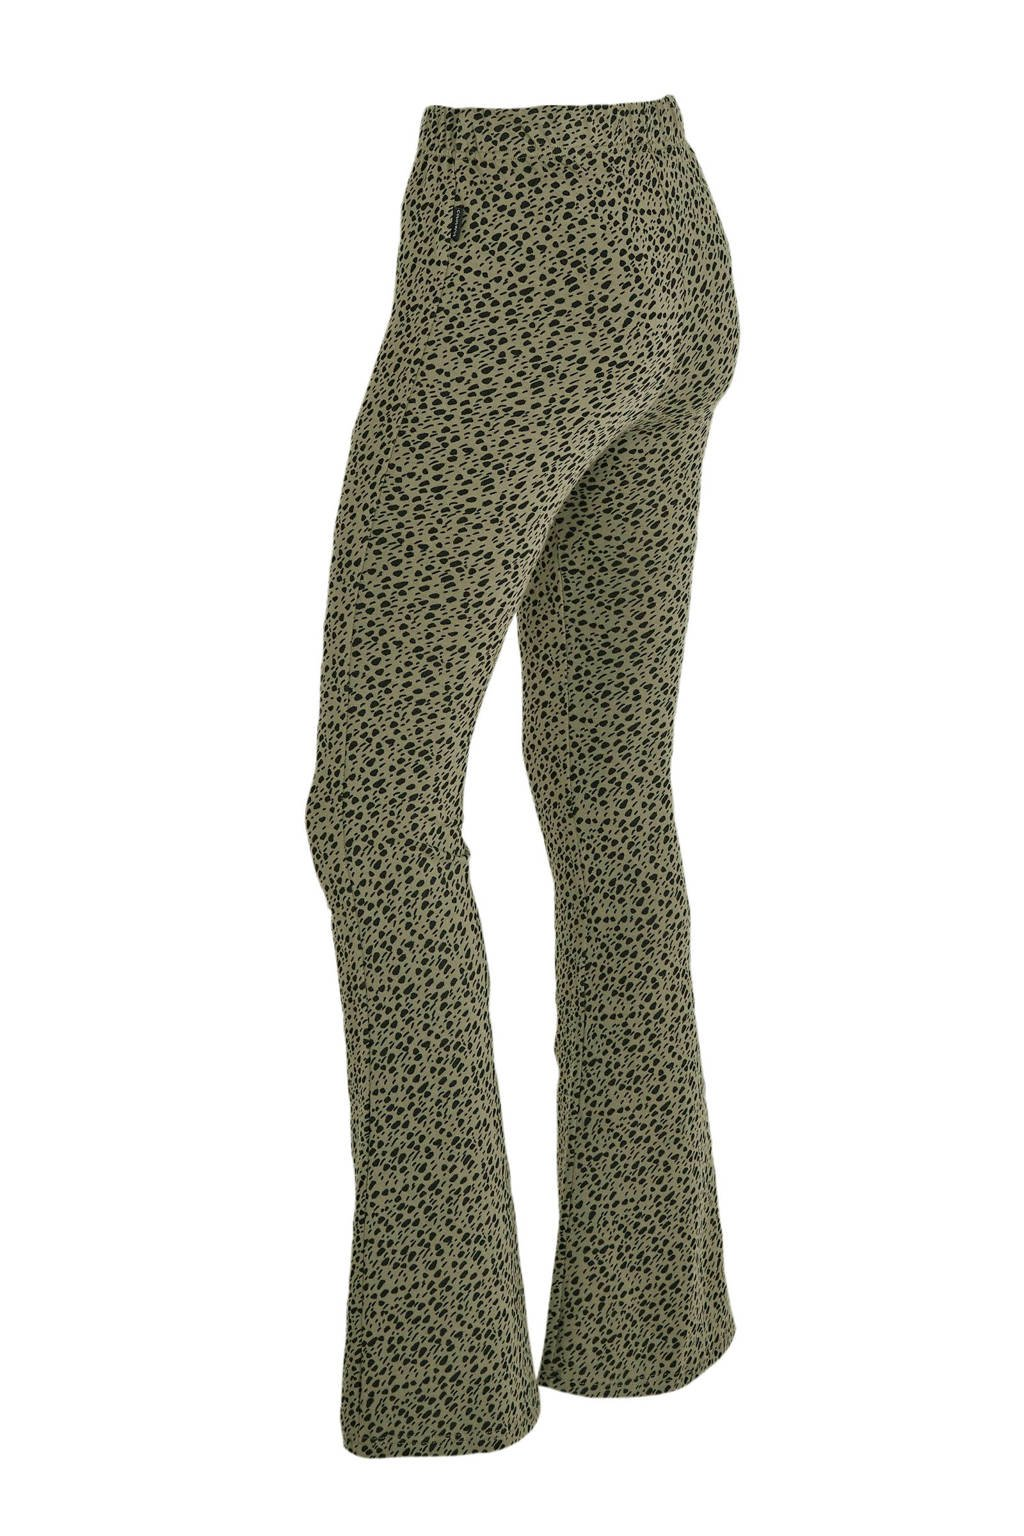 Flare broek Colourful Rebel Leopard dot flare pant 9388 army